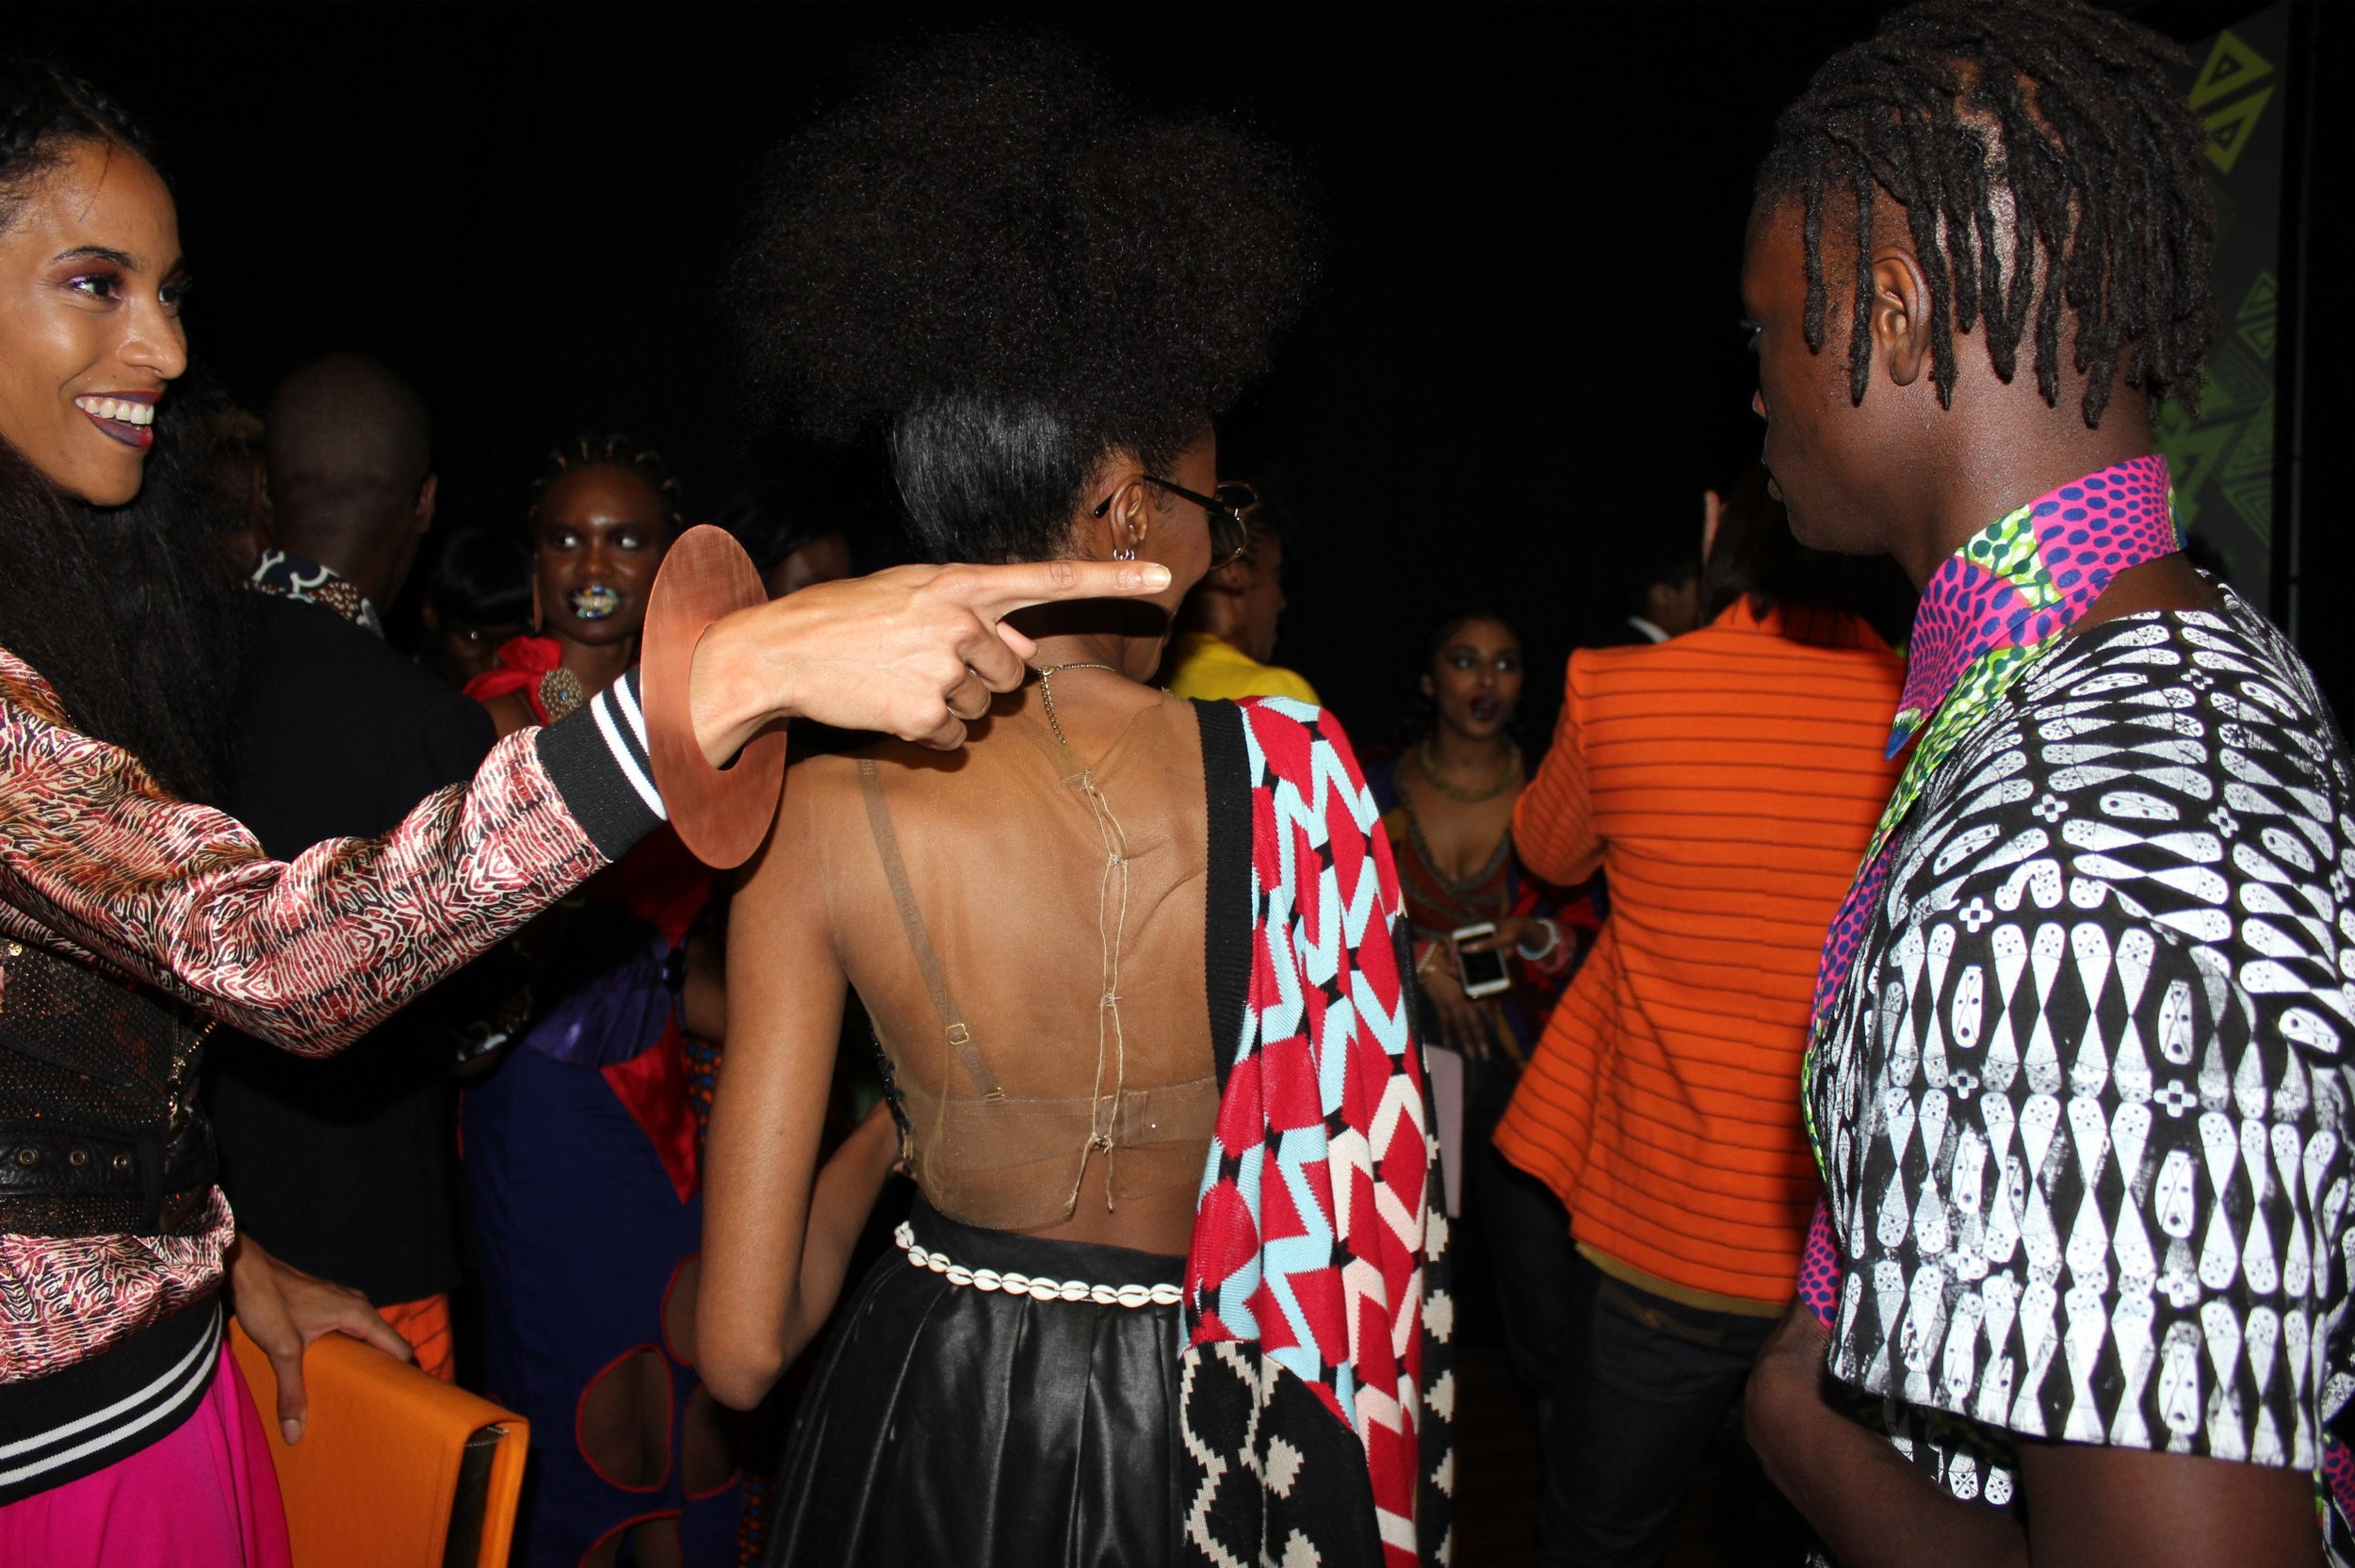 Backstage at Africa Utopia 2016